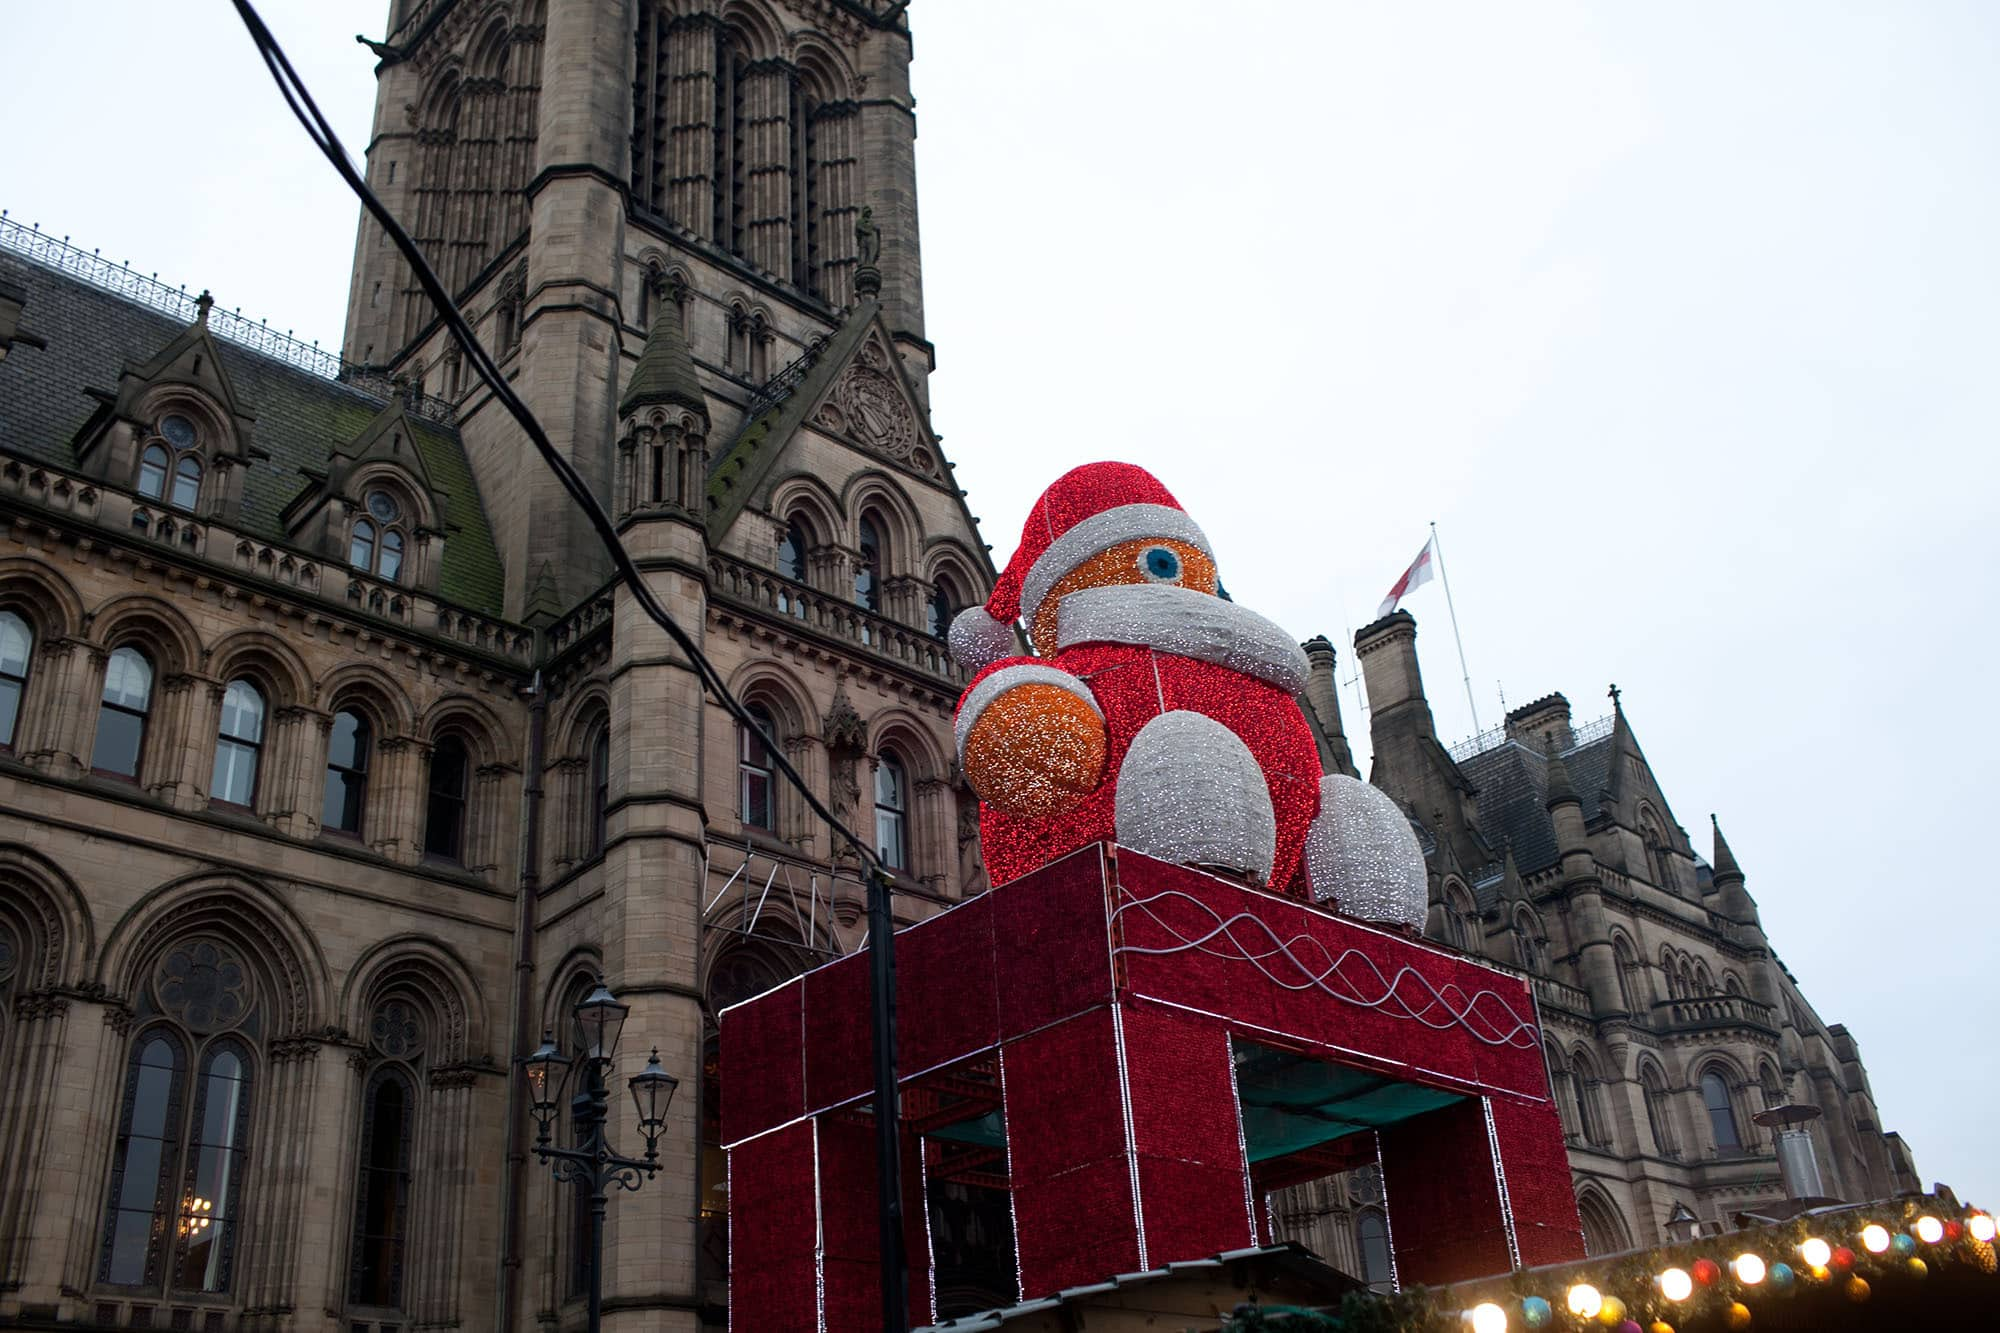 Christmas market in Manchester, England.